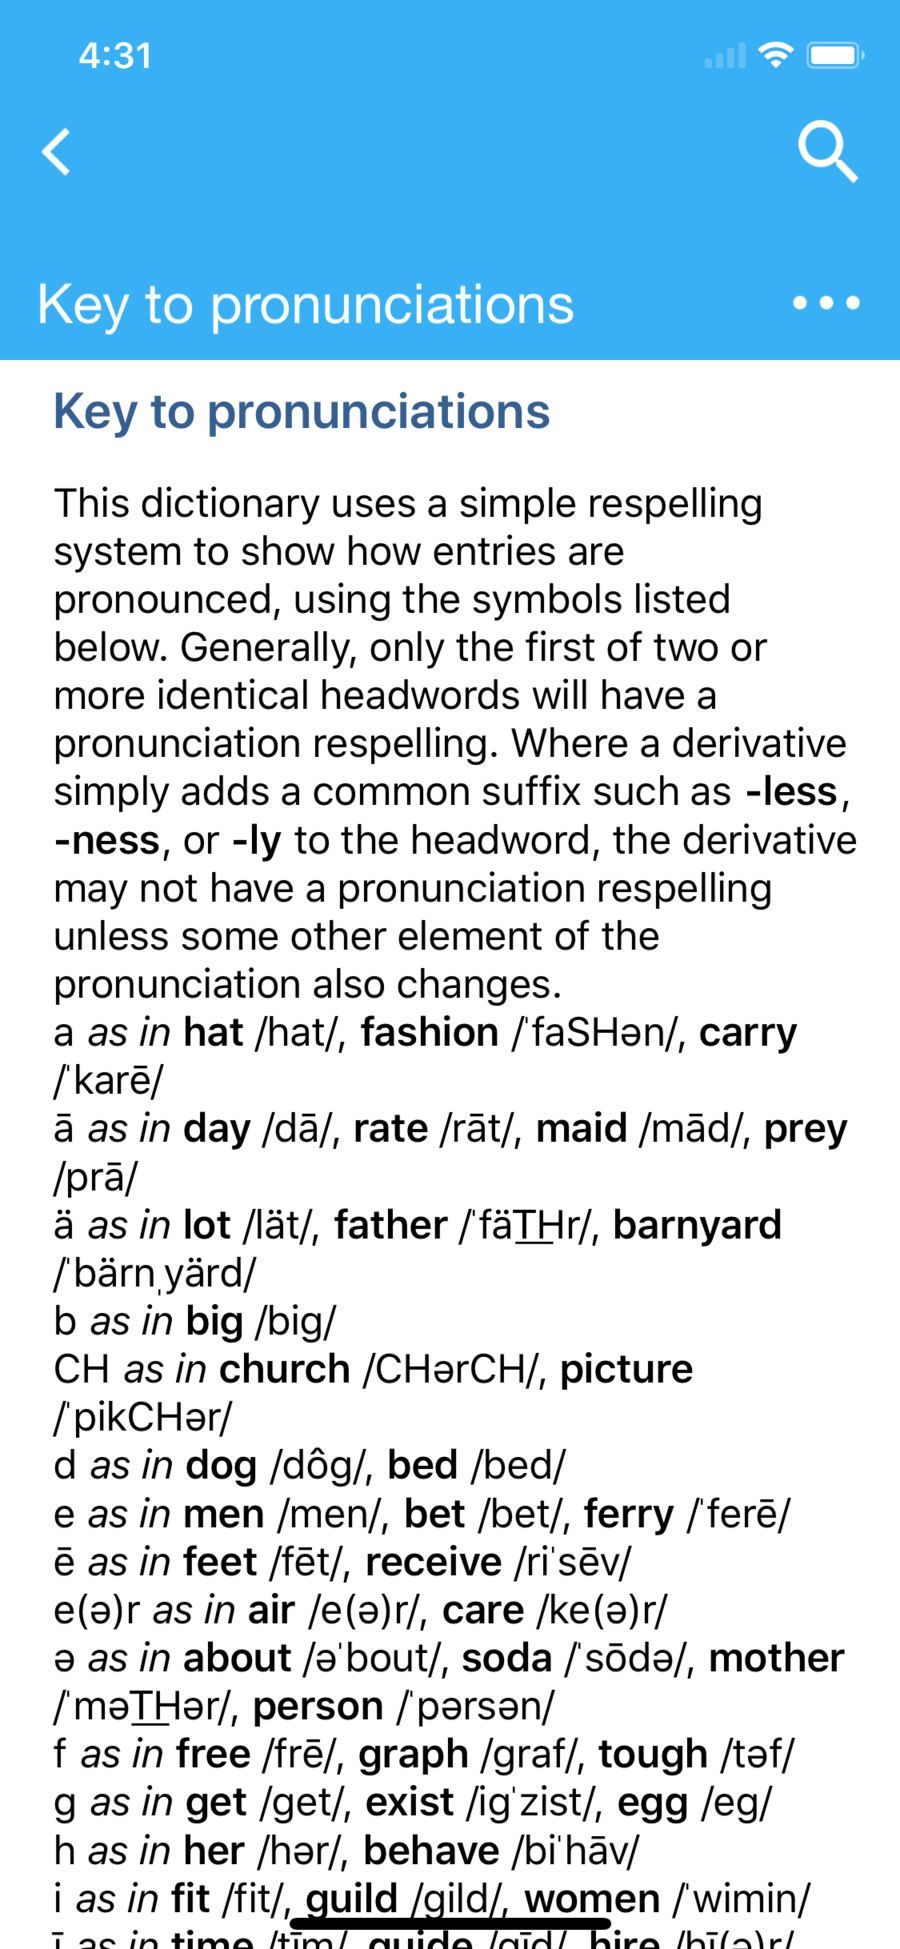 Oxford American Dictionary #Education#Reference#apps#ios